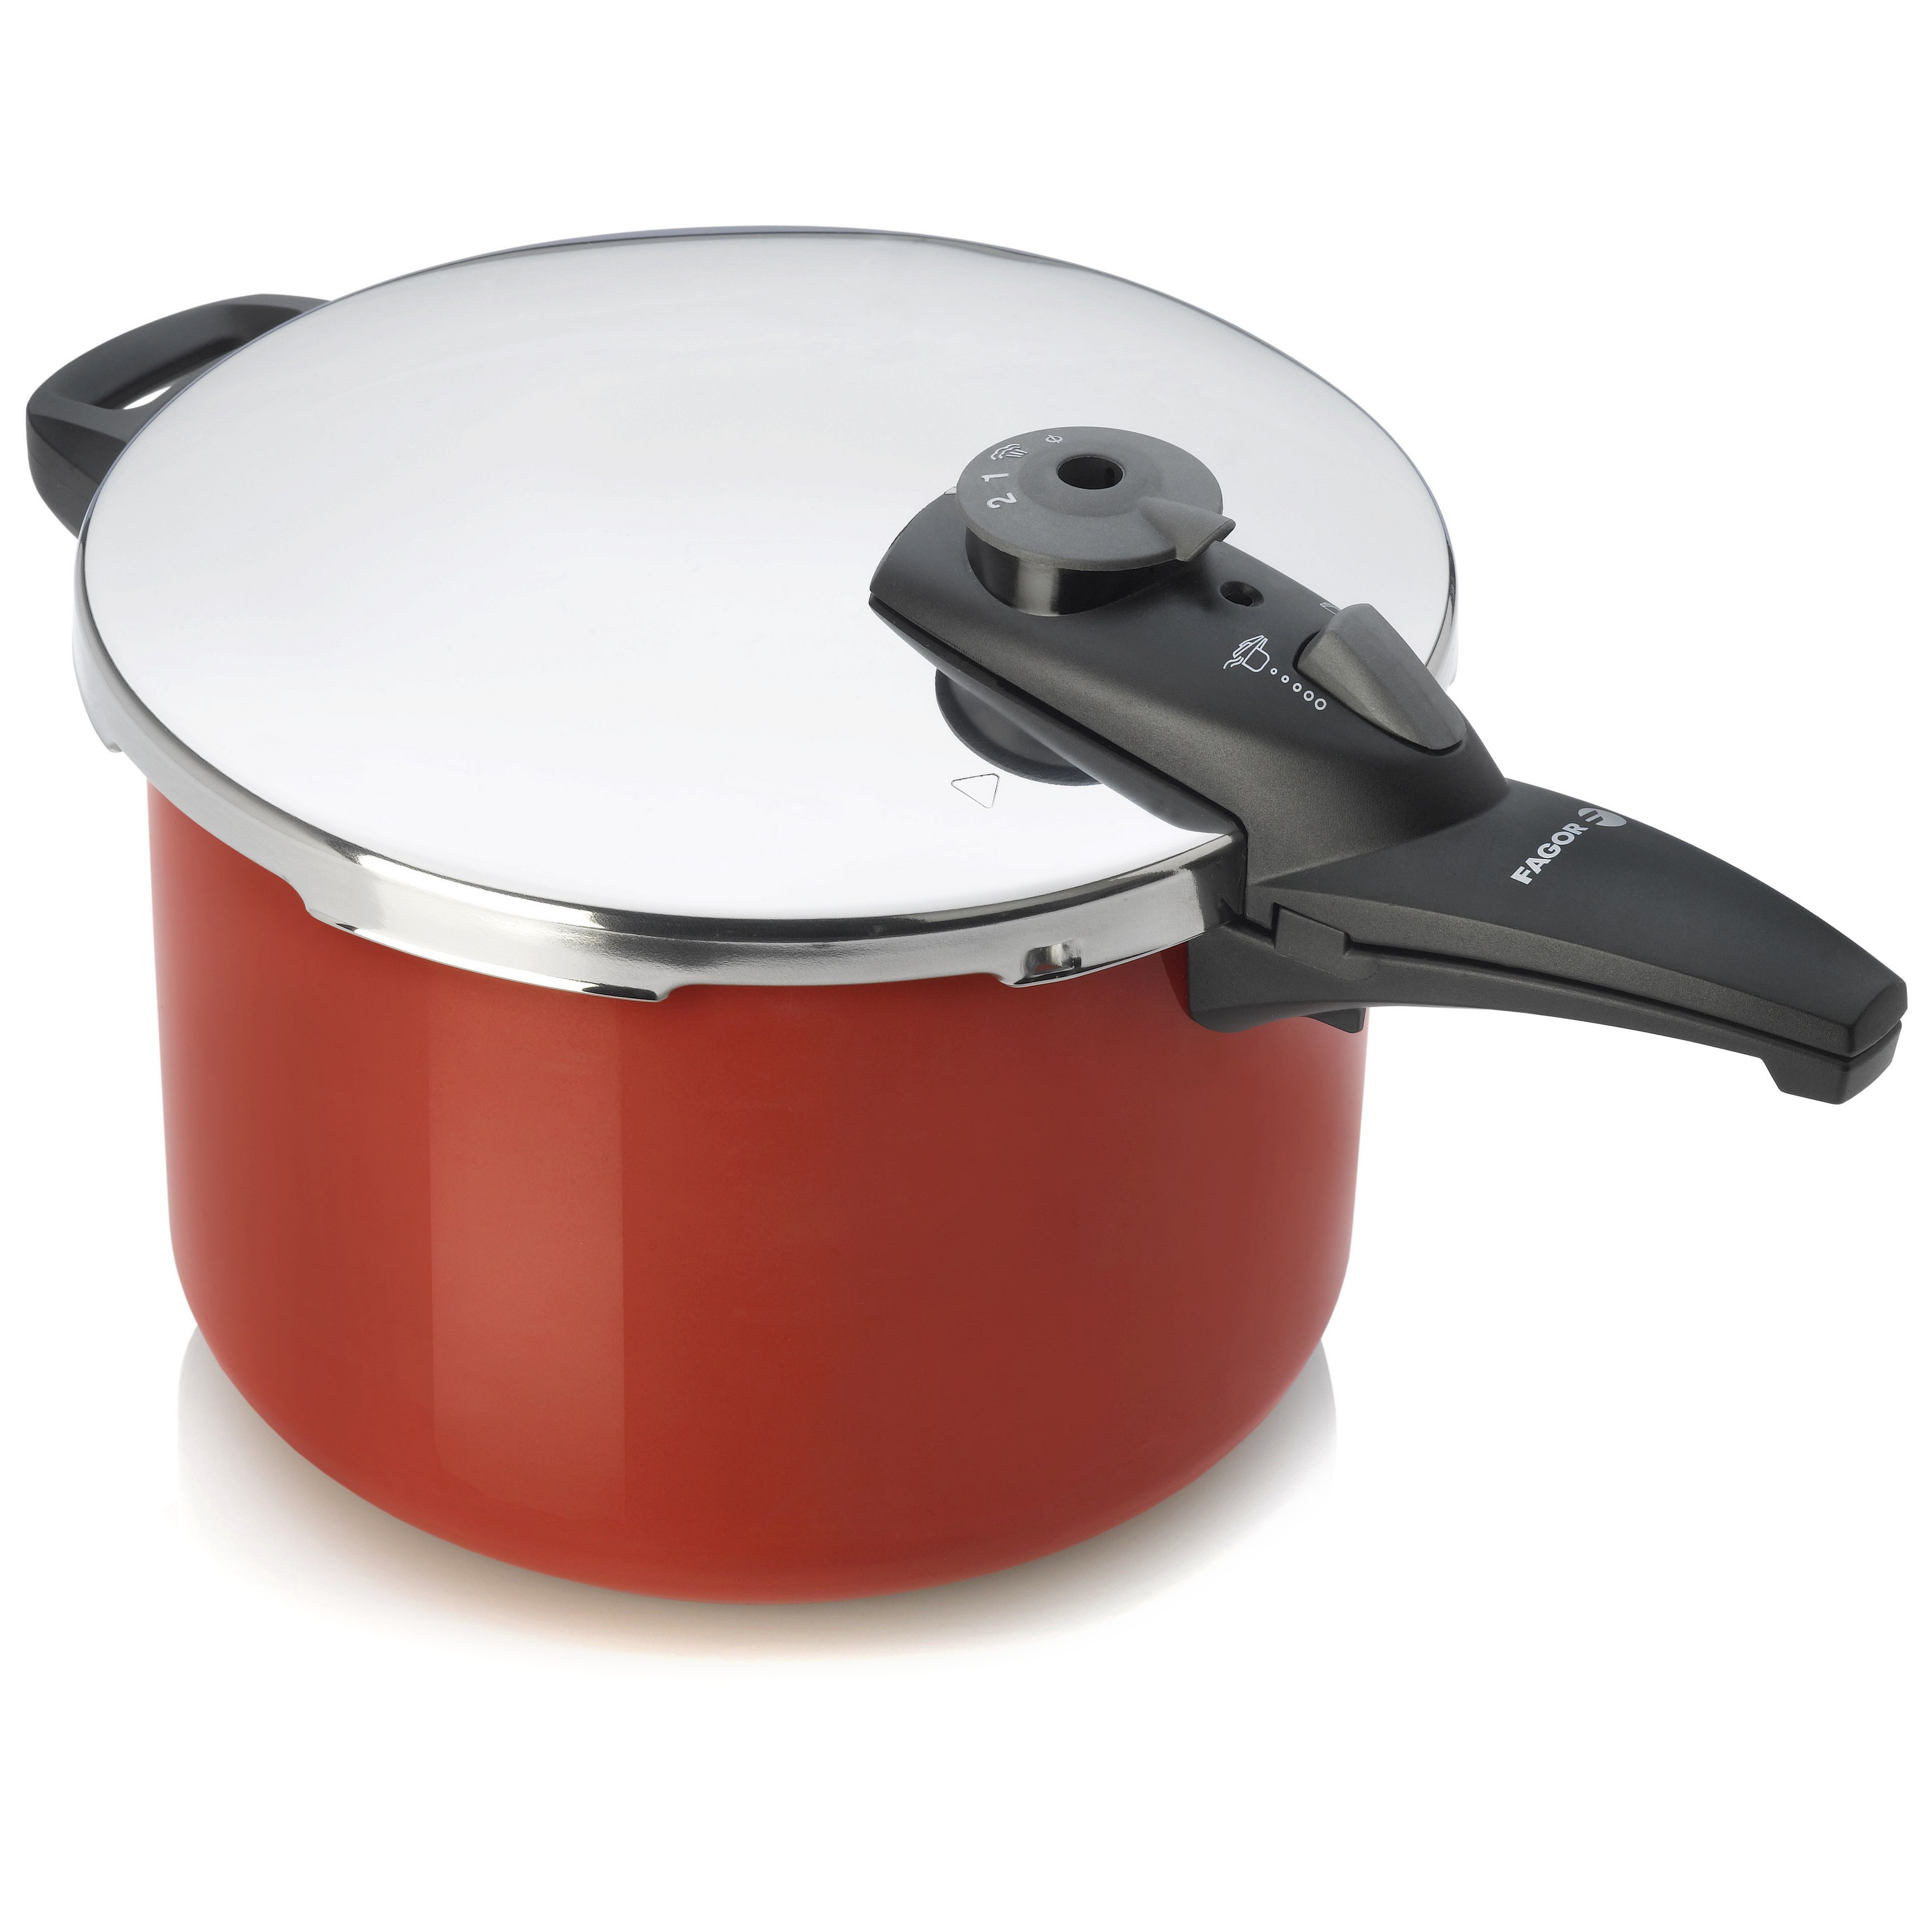 Fagor Cayenne Stainless Steel 8 Quart Pressure Cooker